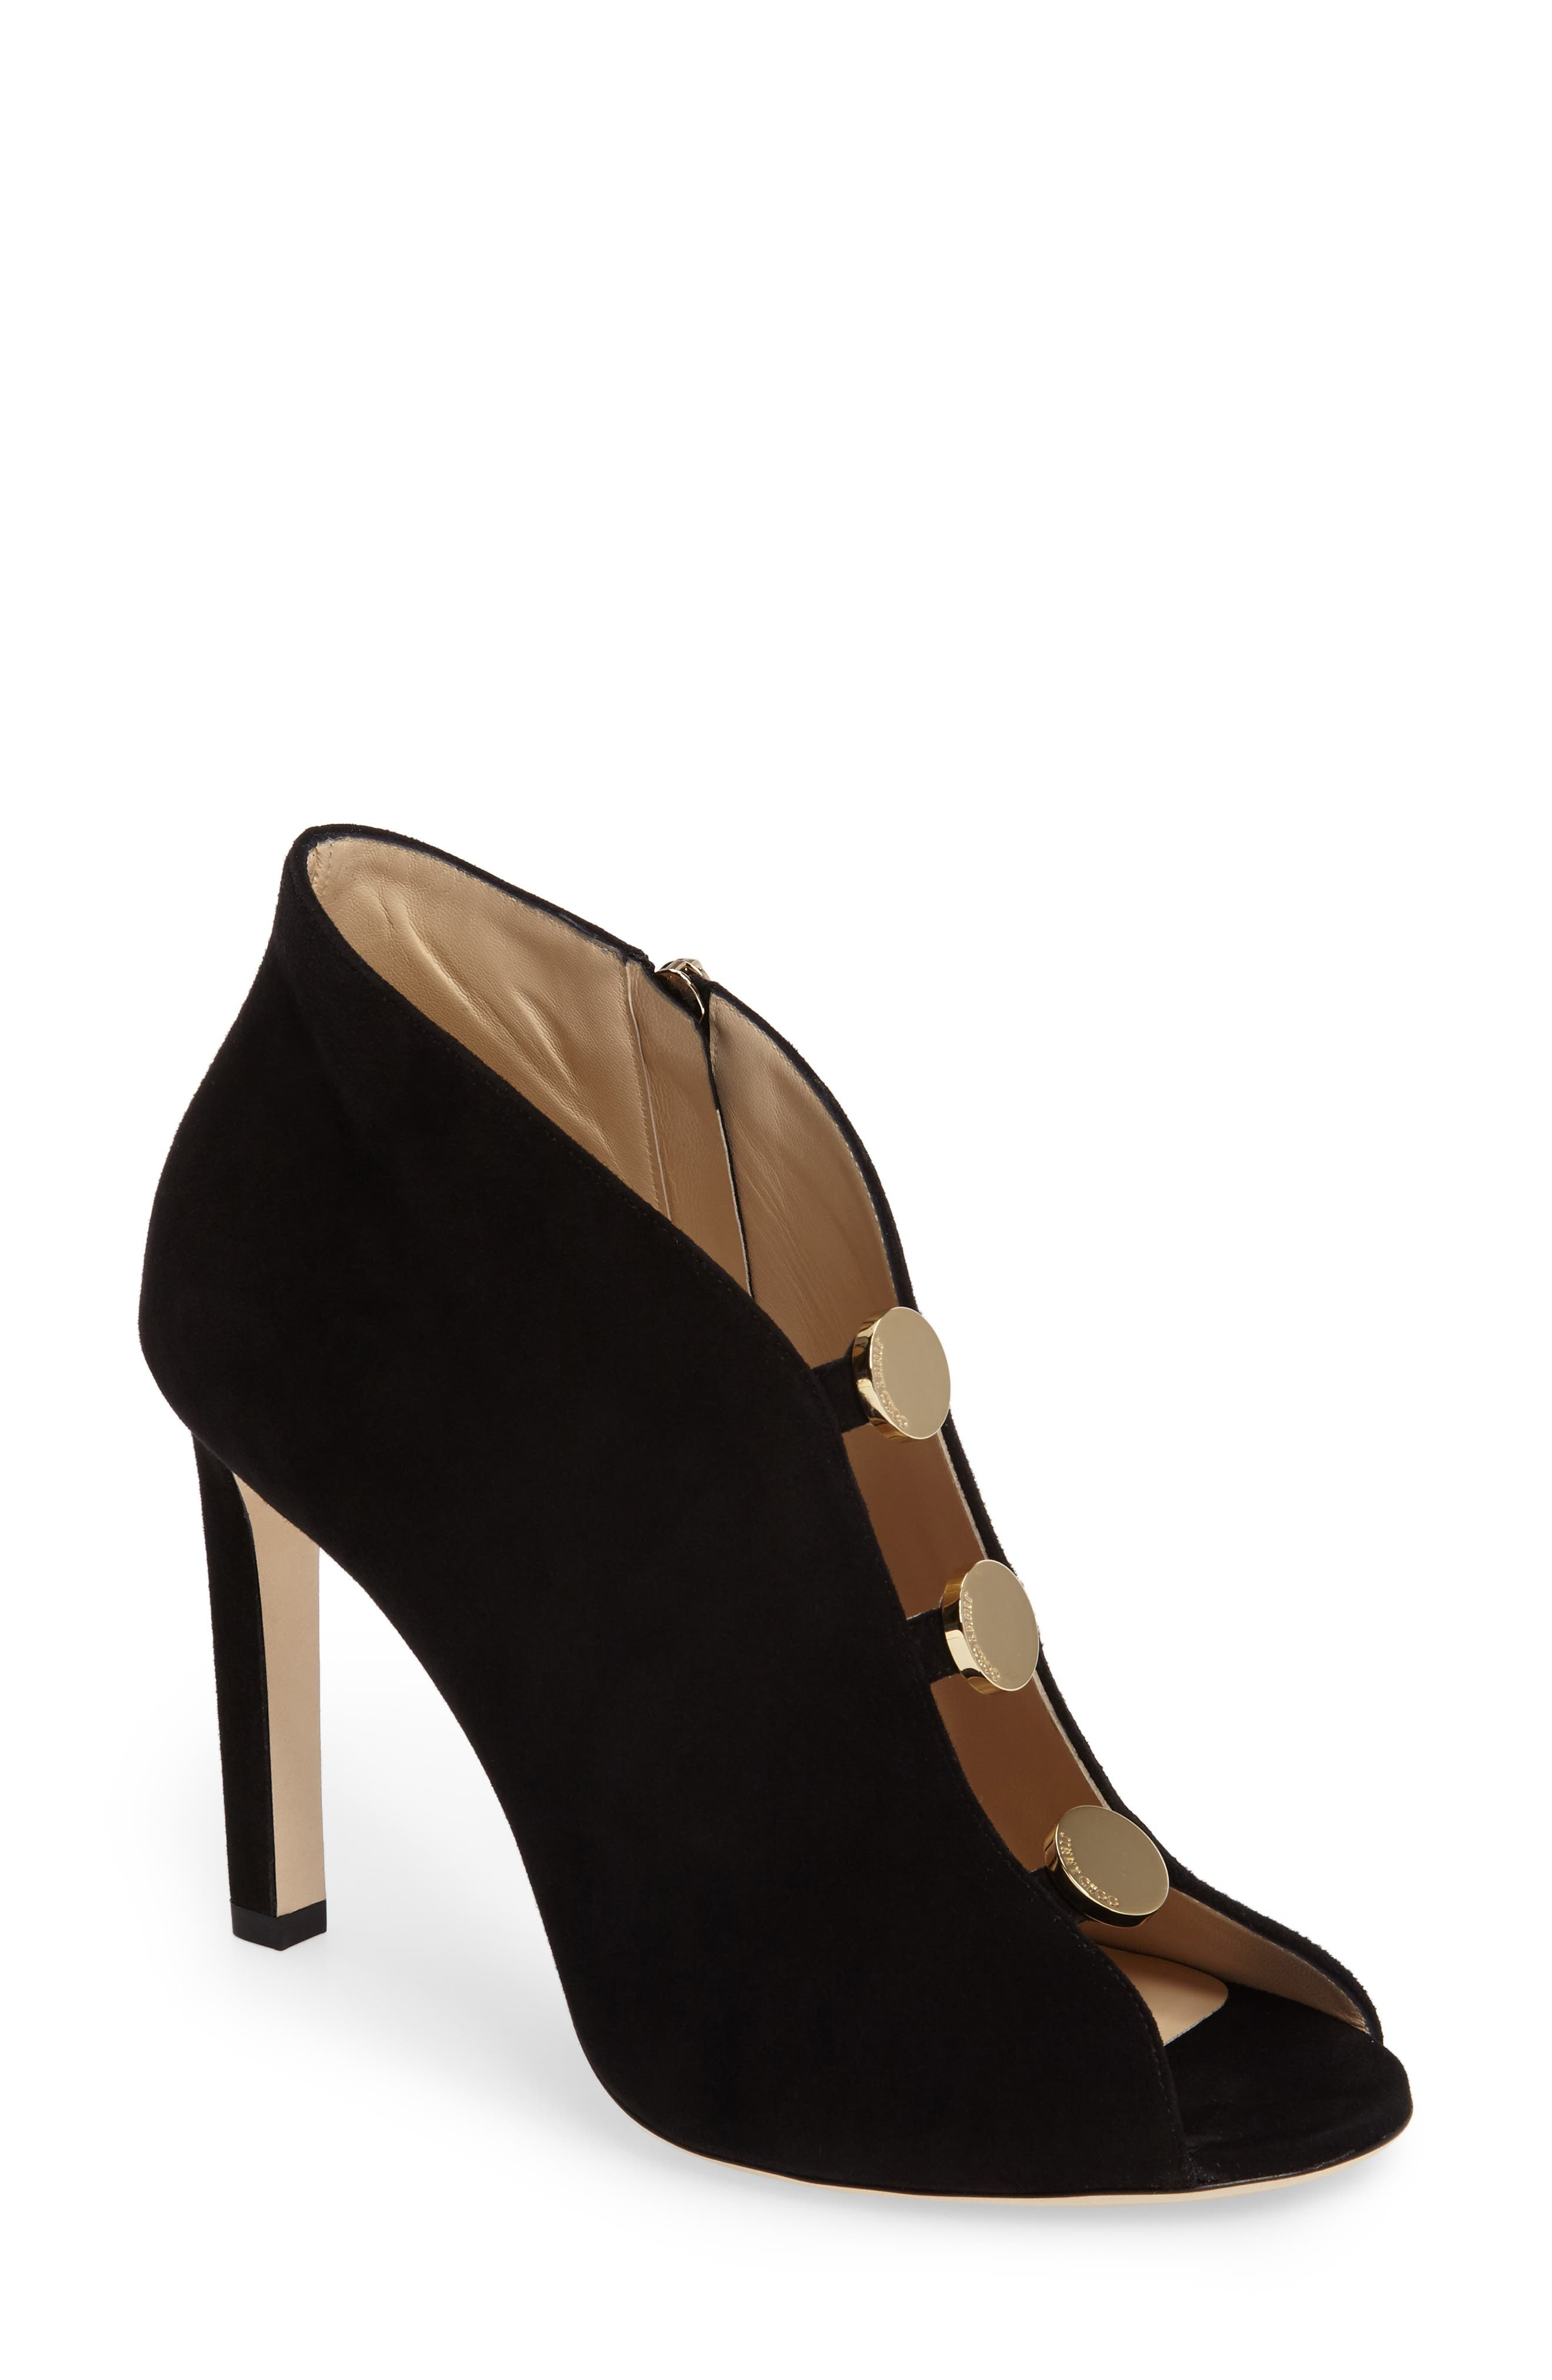 Main Image - Jimmy Choo Lorna Button Open-Toe Bootie